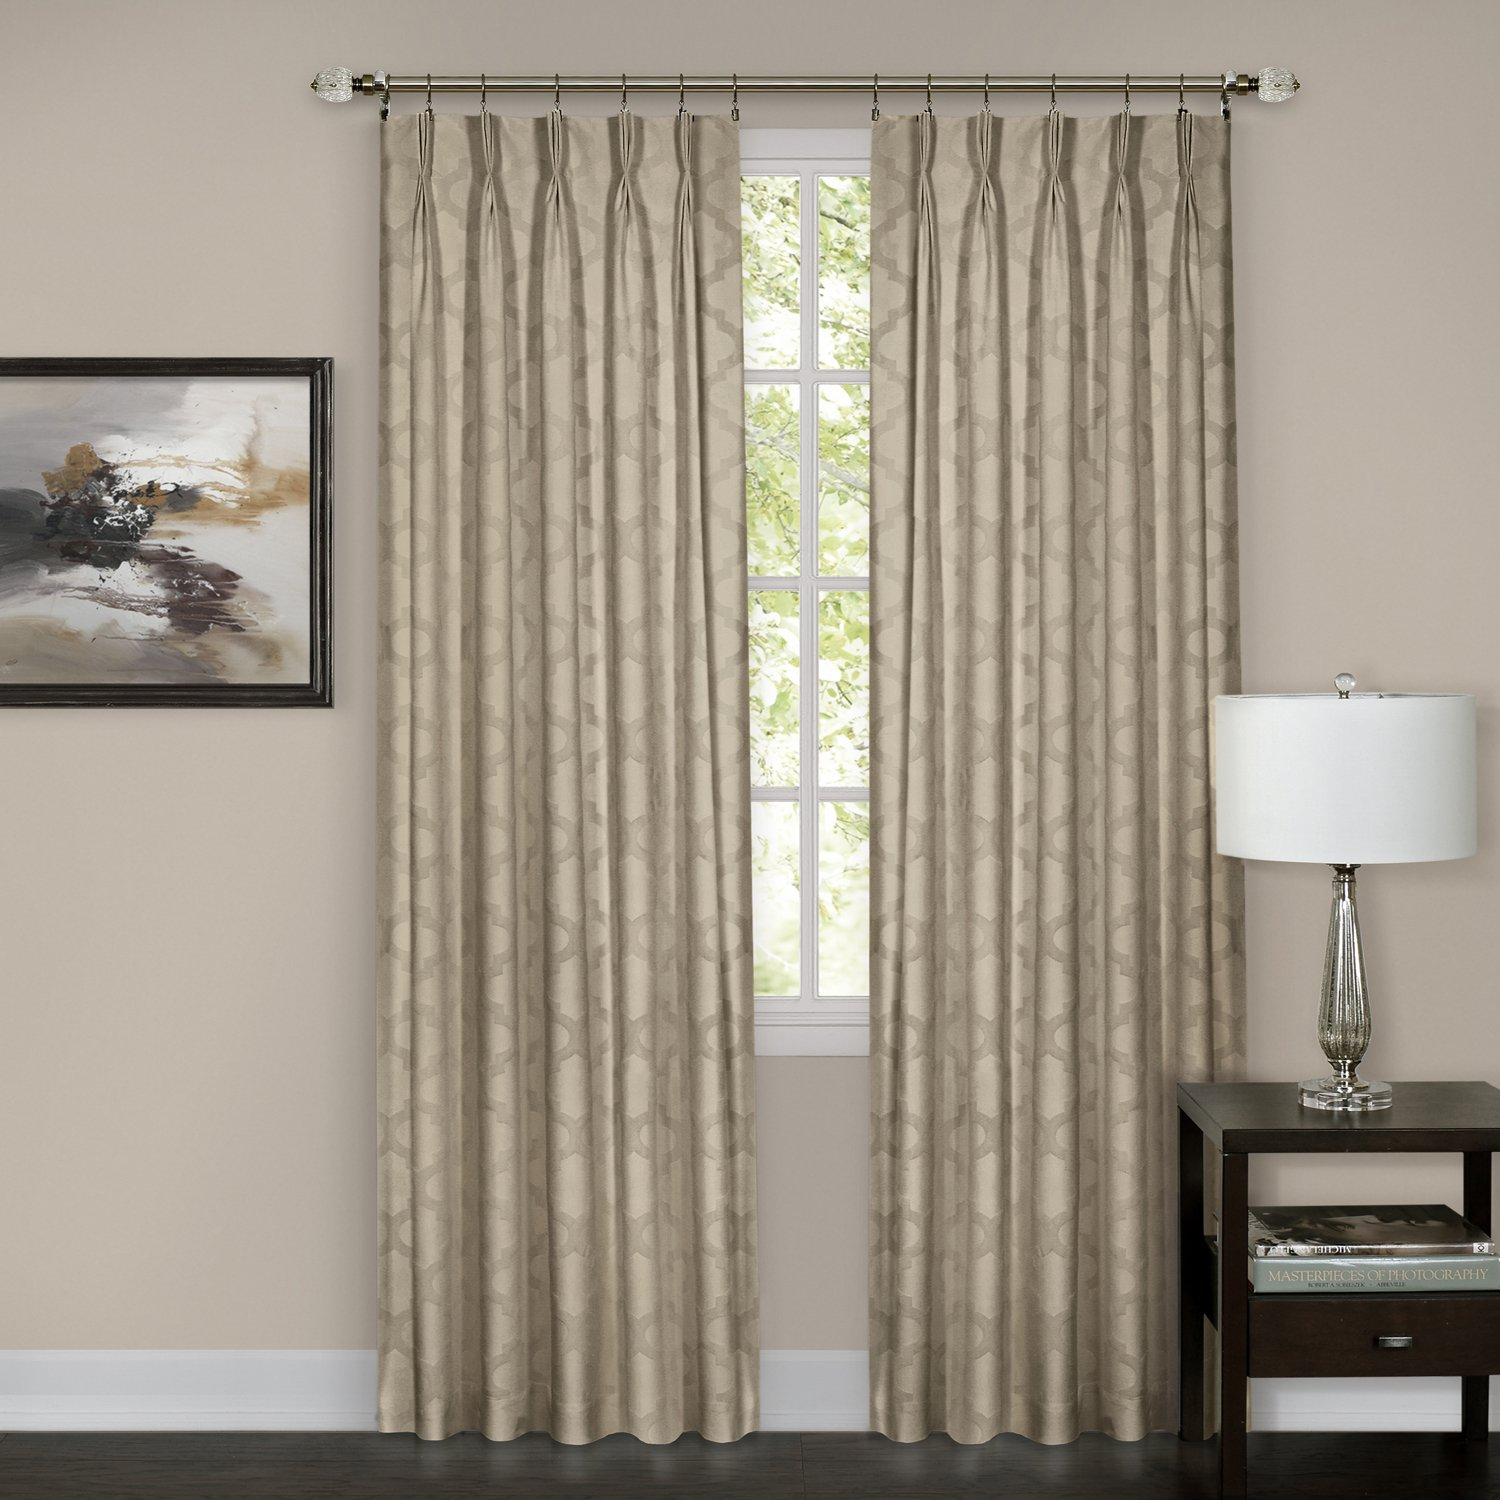 panel patio crosby pleat x drapes thermal pleated to expand click pinch room p darkening